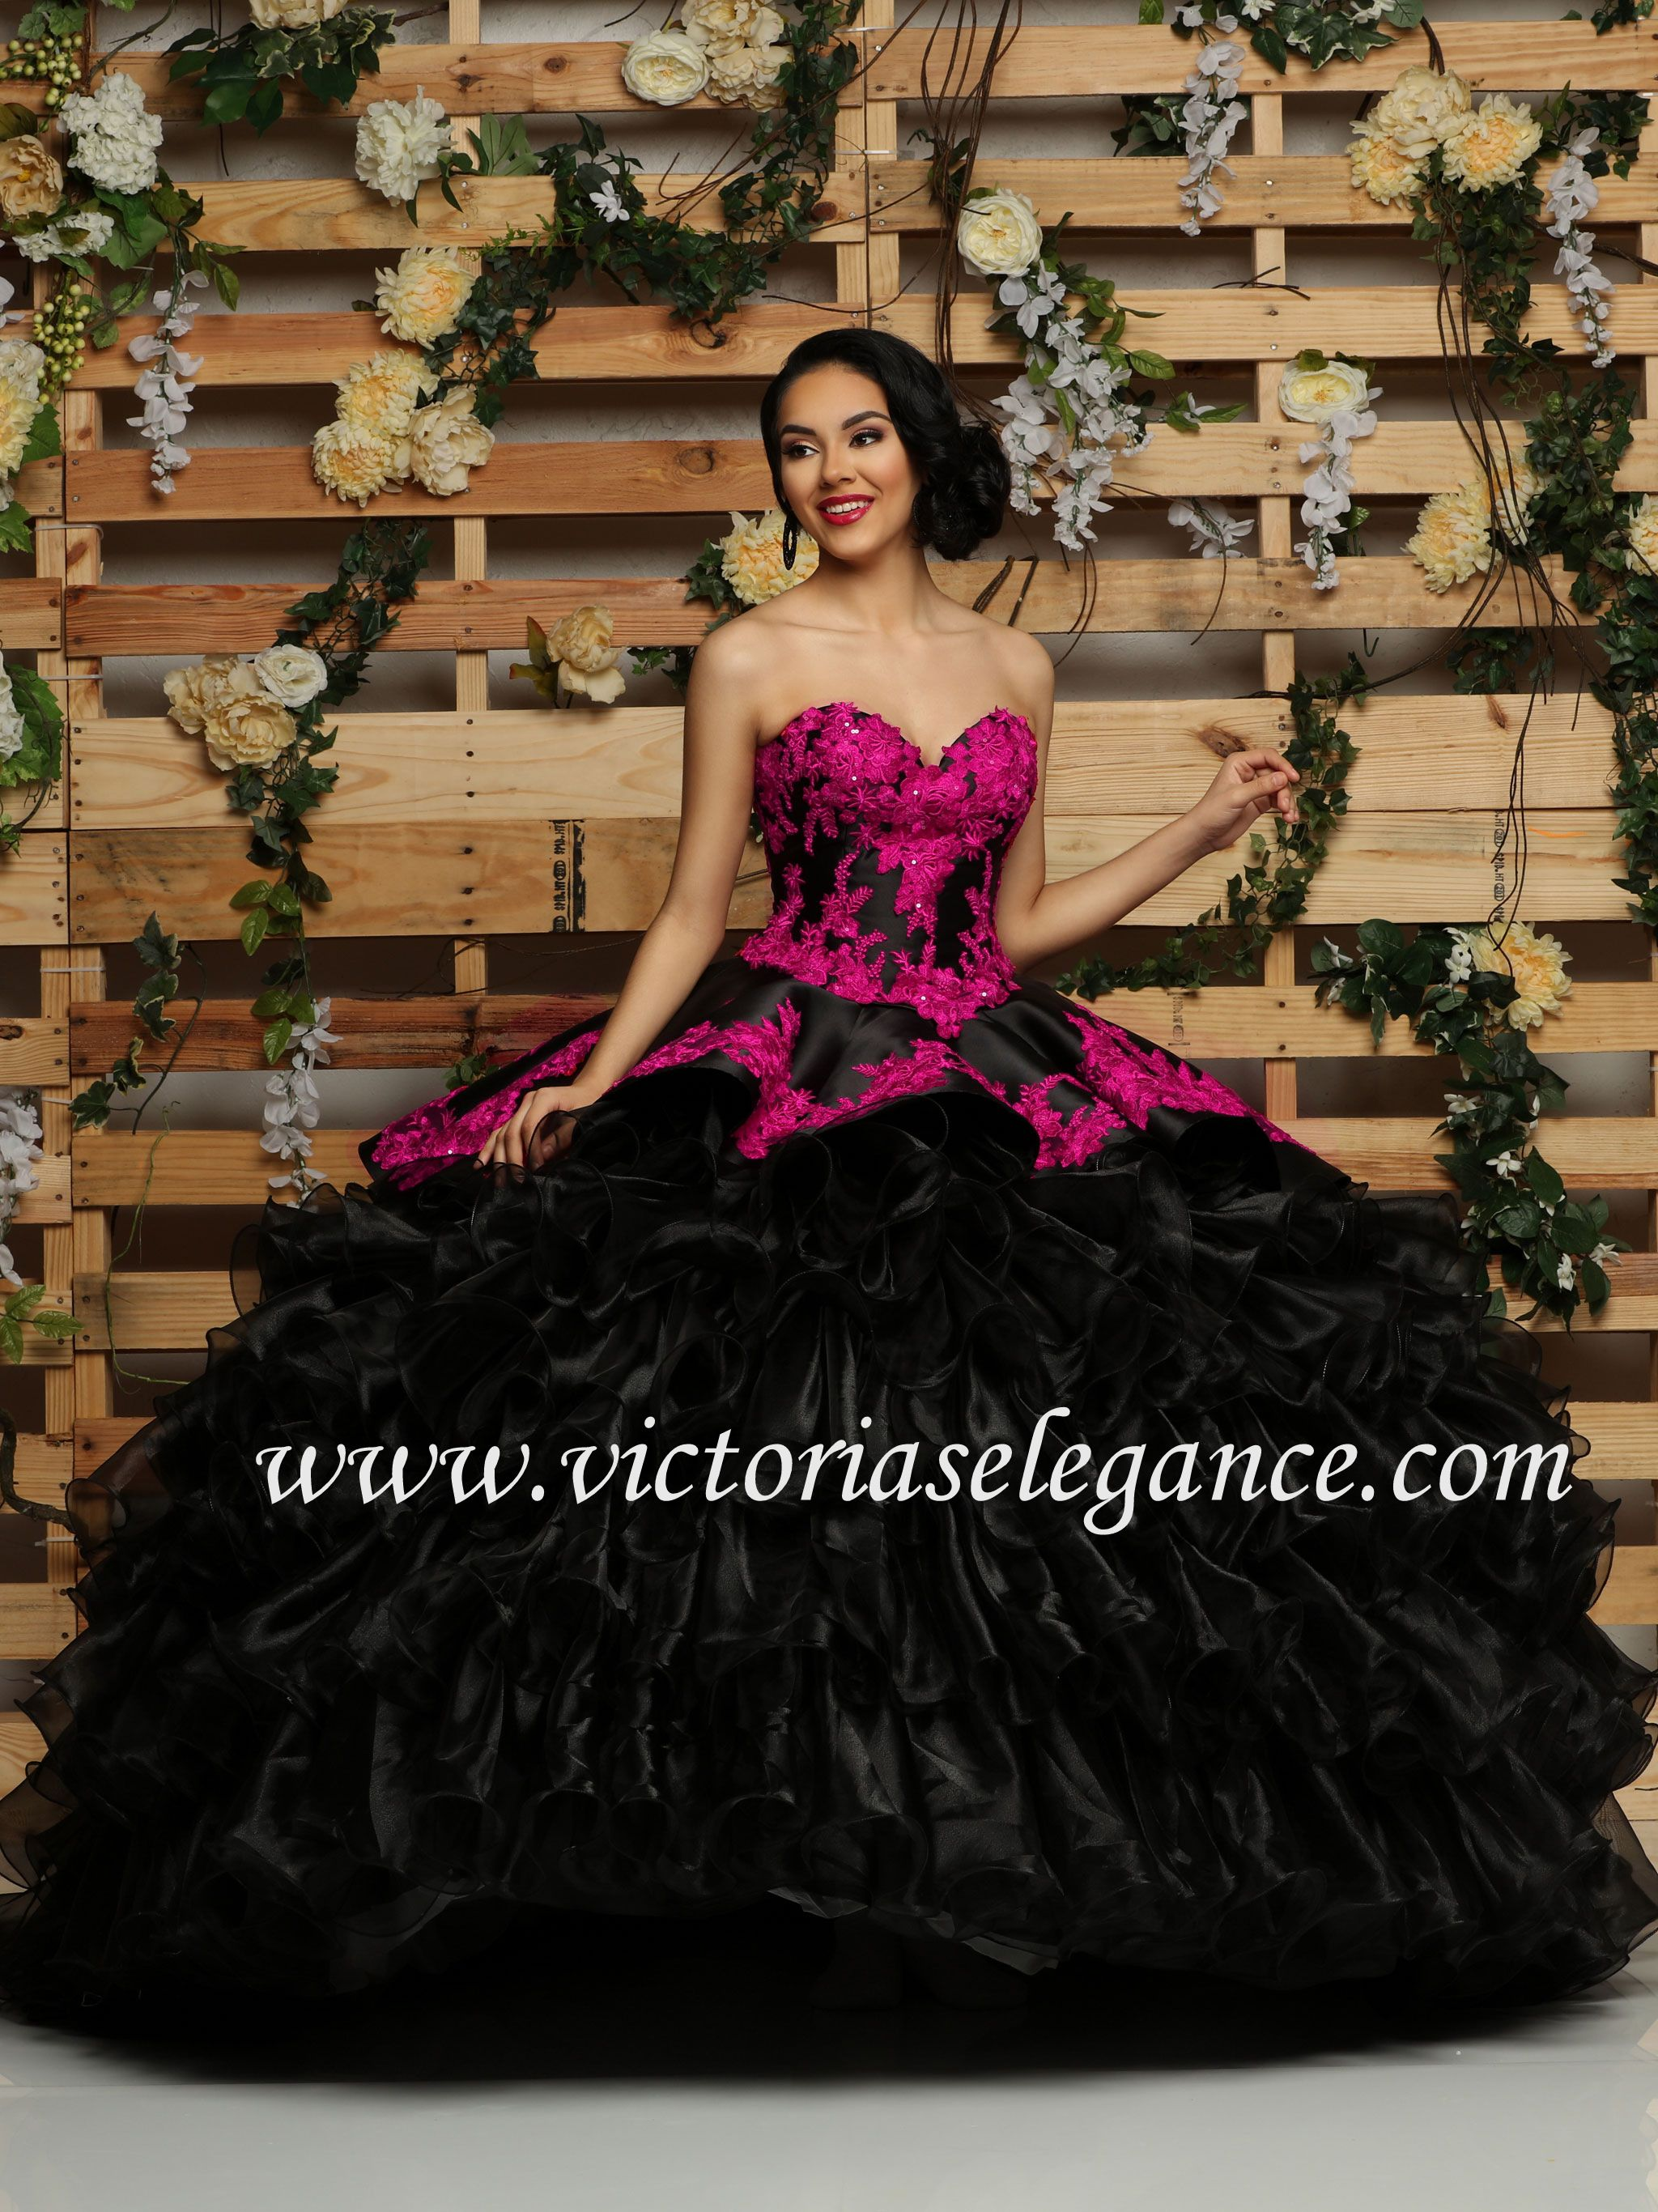 91e3348fc19 This Q by DaVinci satin ball gown features a corset back